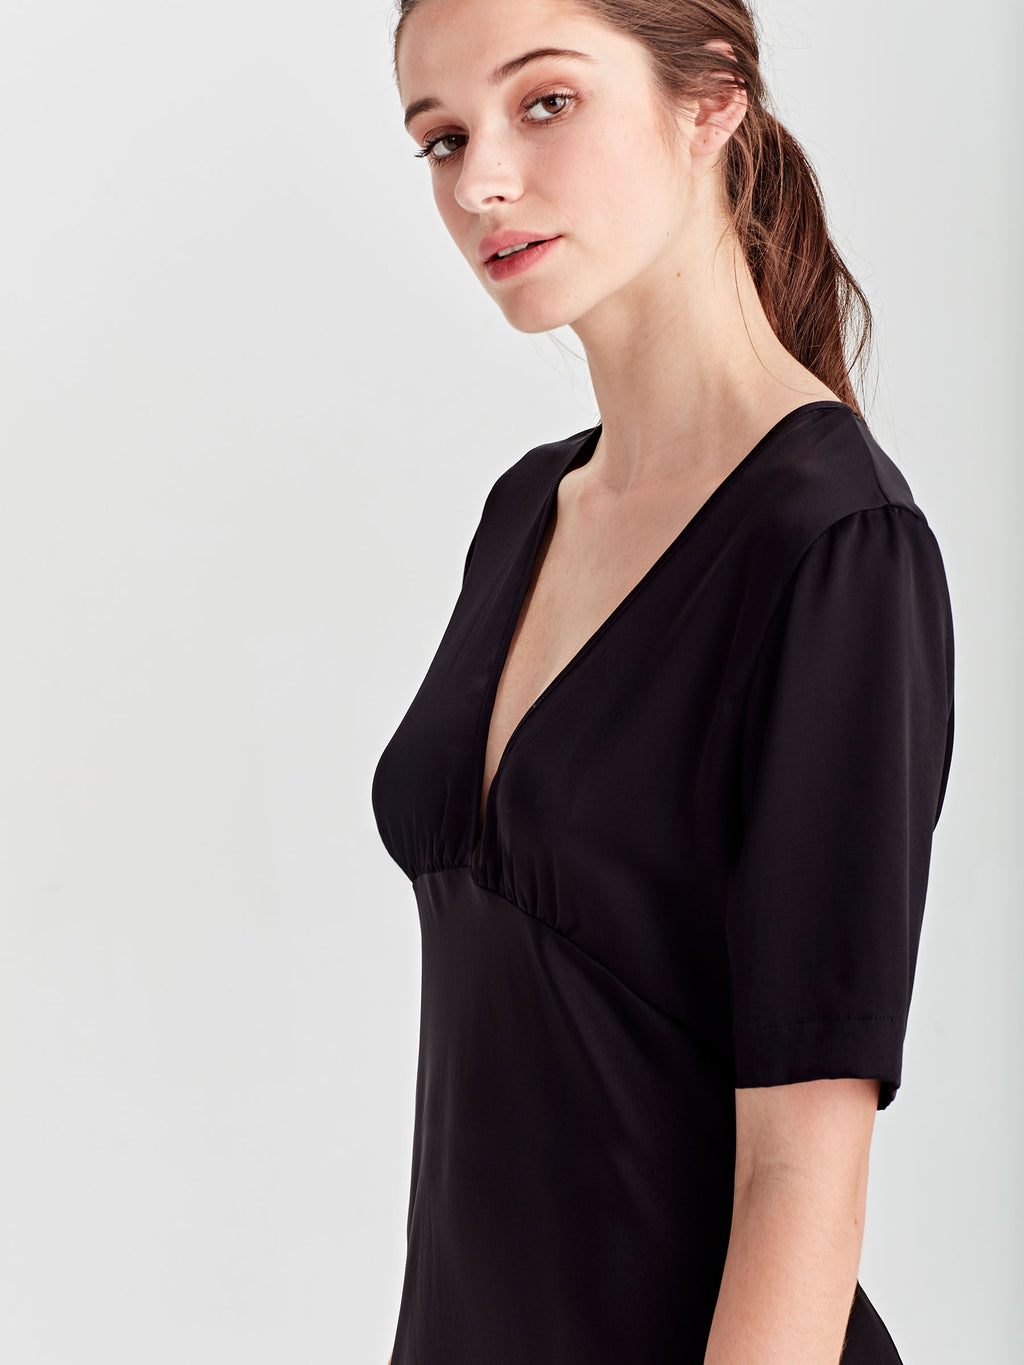 Covet Dress (Satin Triacetate) Black